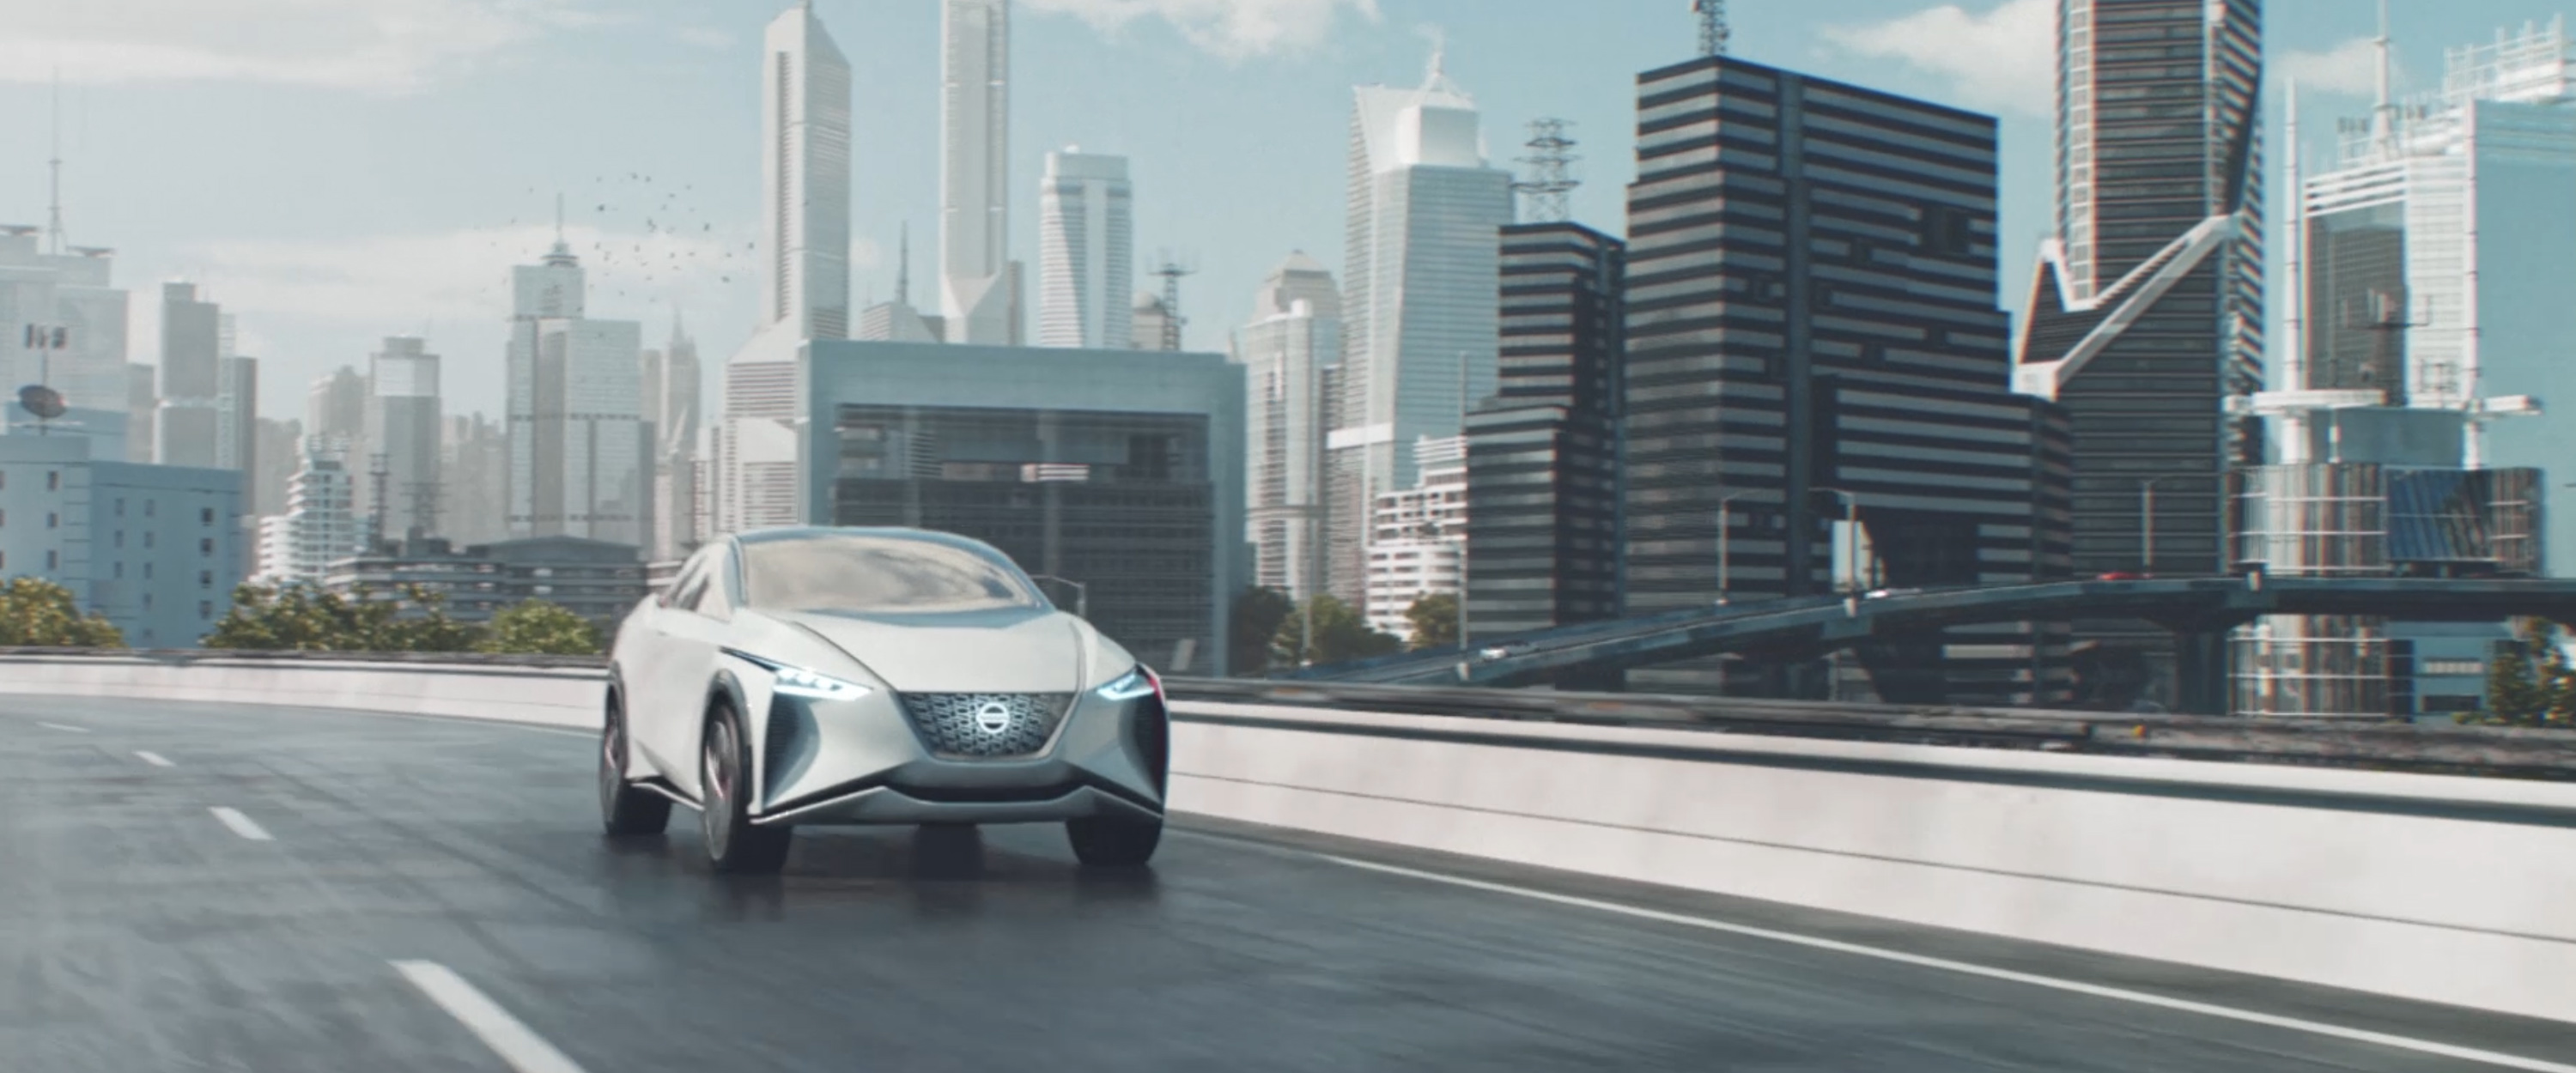 Nissan Intelligent Mobility intro video